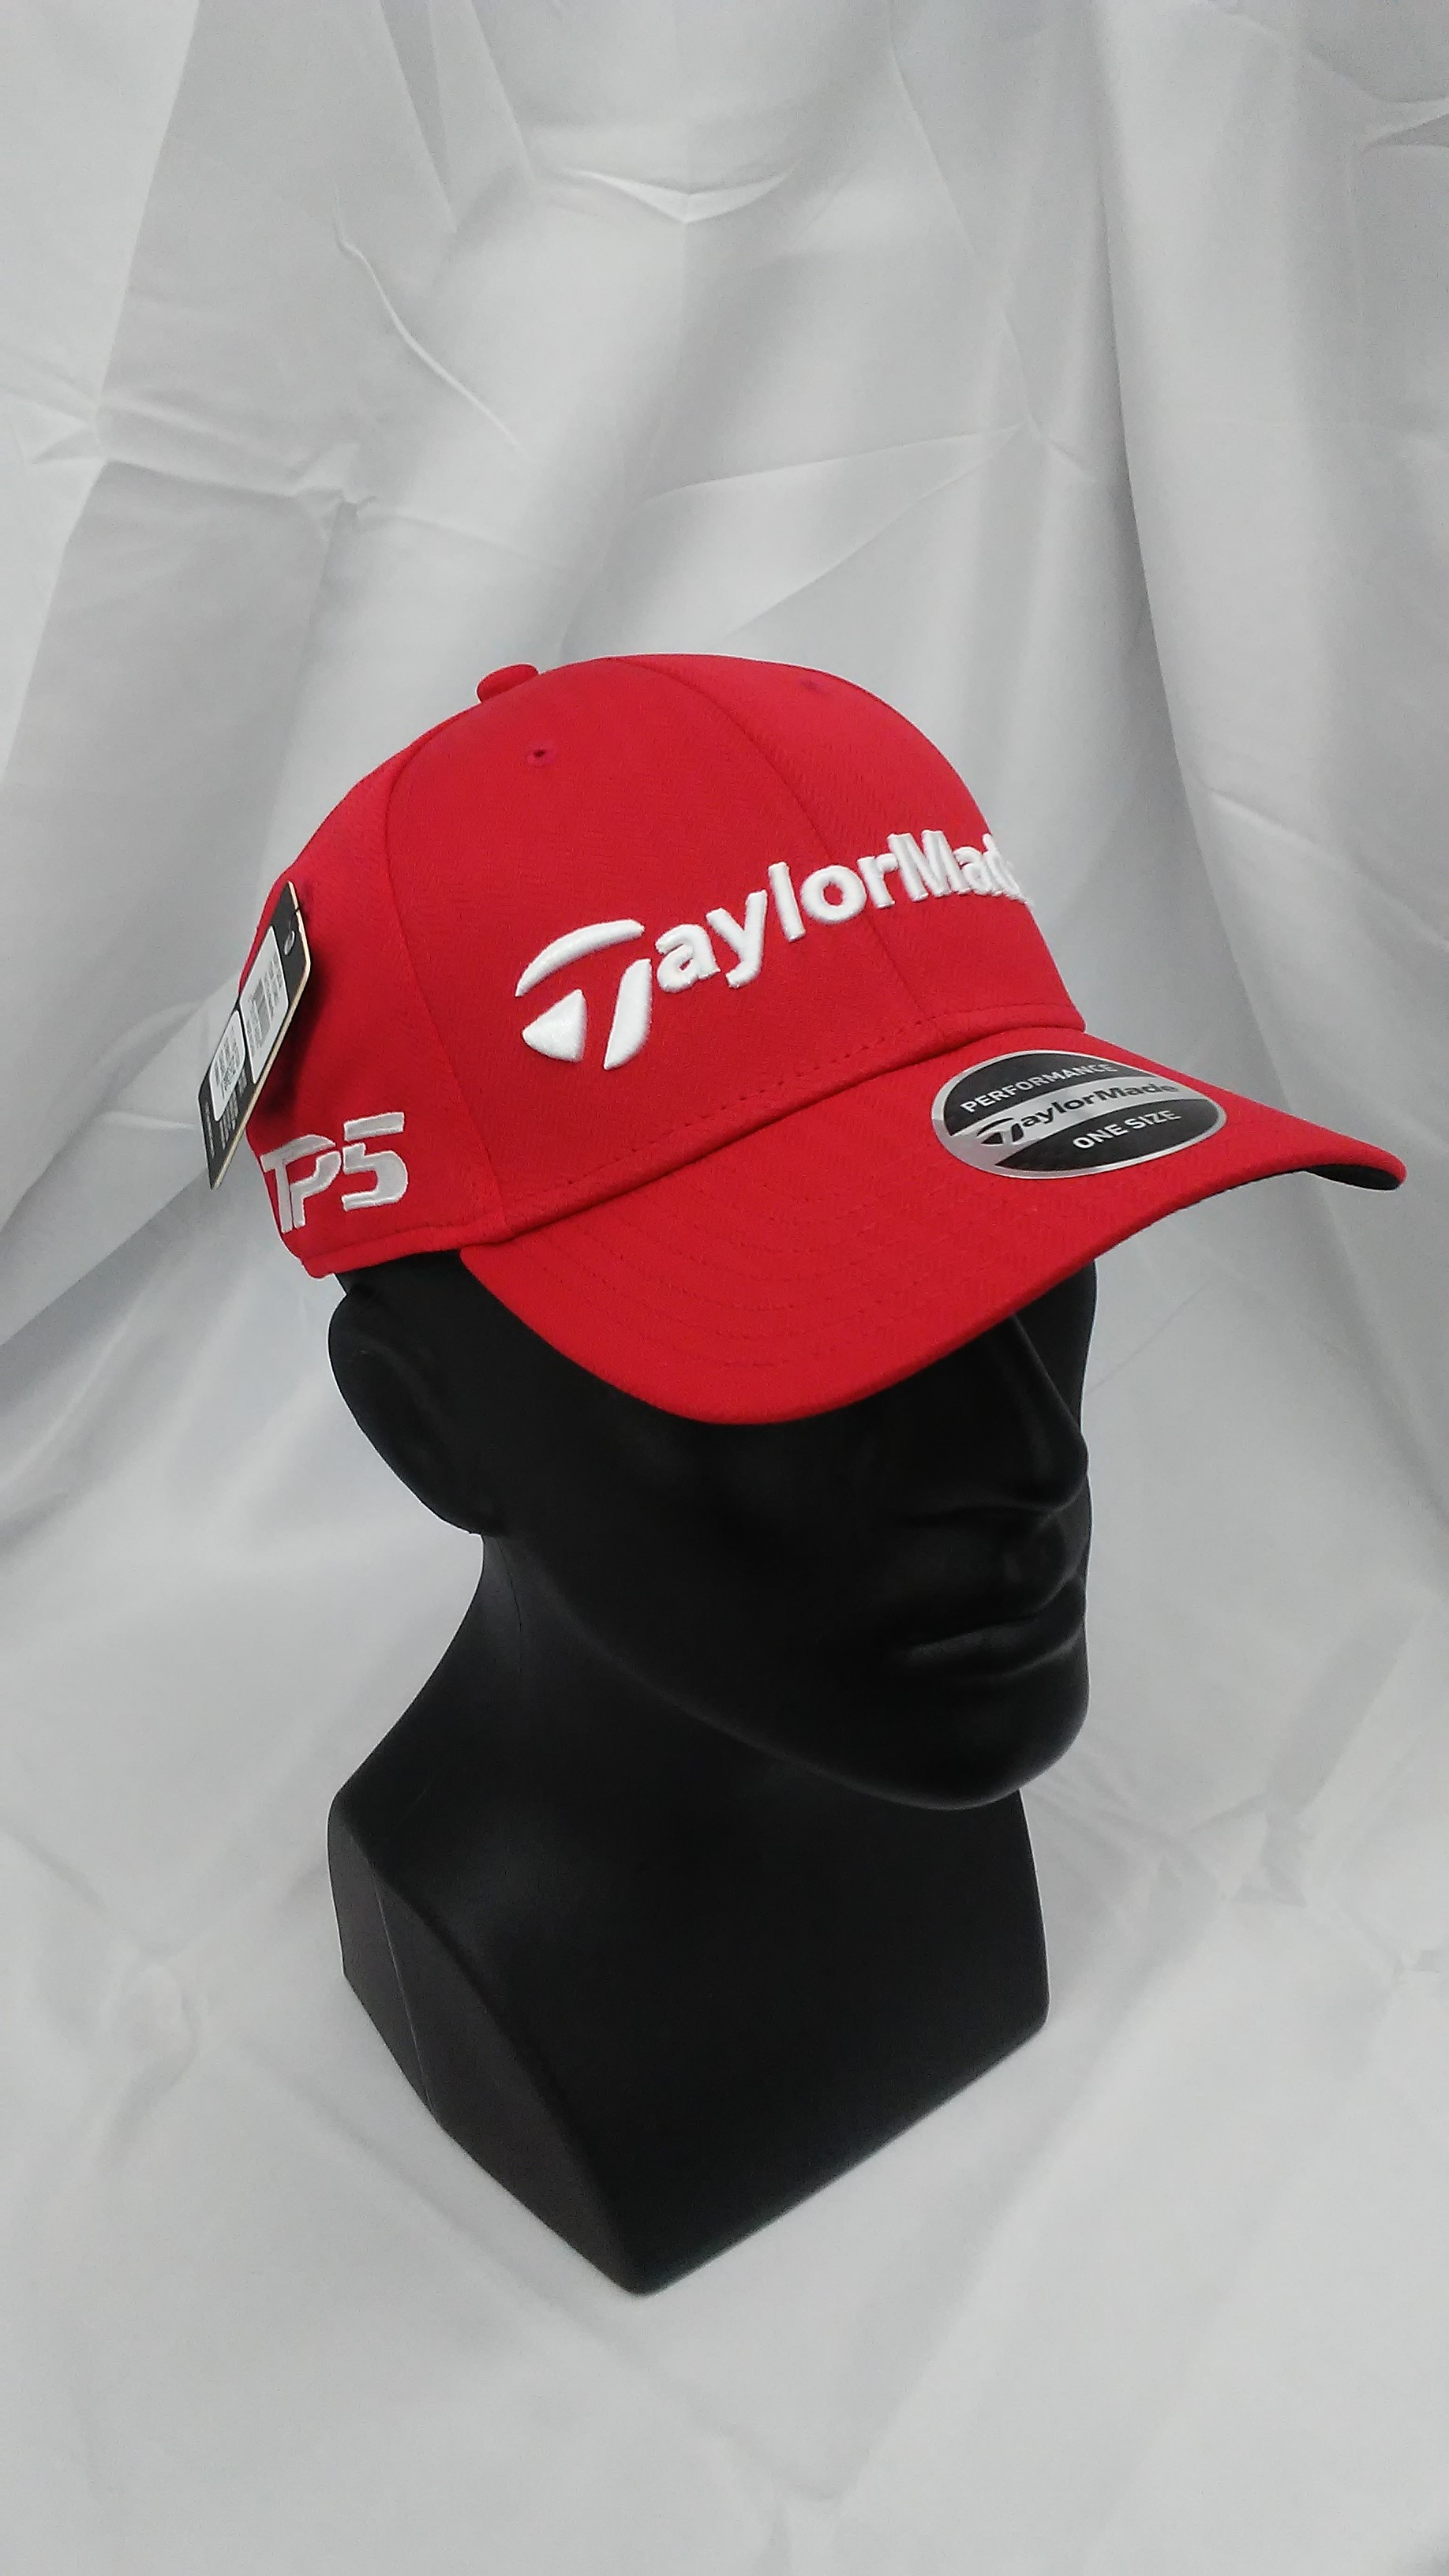 Visit our eBay Store for more great deals  Hurricane Golf New Taylormade  Golf Core Custom Adjustable Hat Red M1   TP5 Stitched Logos BUY IT NOW   4.99! e787214bd23